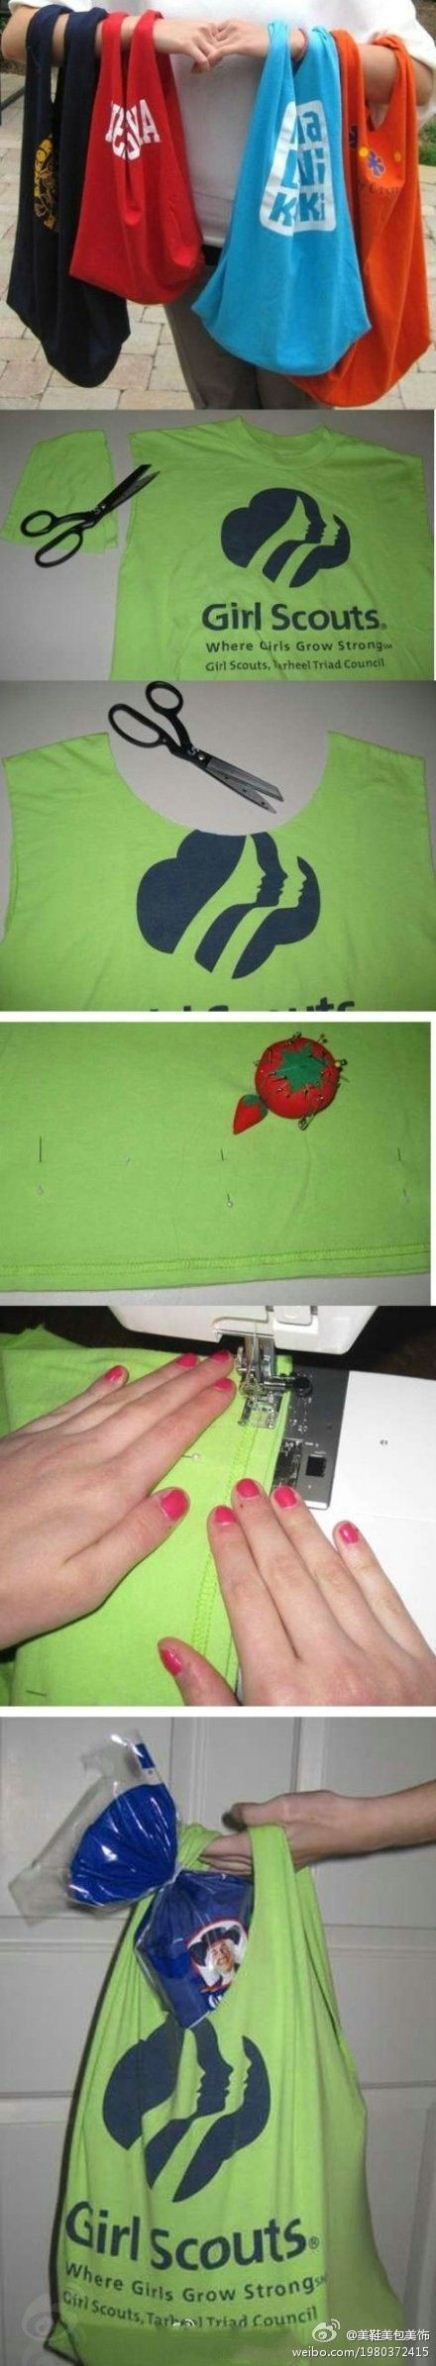 DIY -- Turn Old T-Shirts into useful Totes!